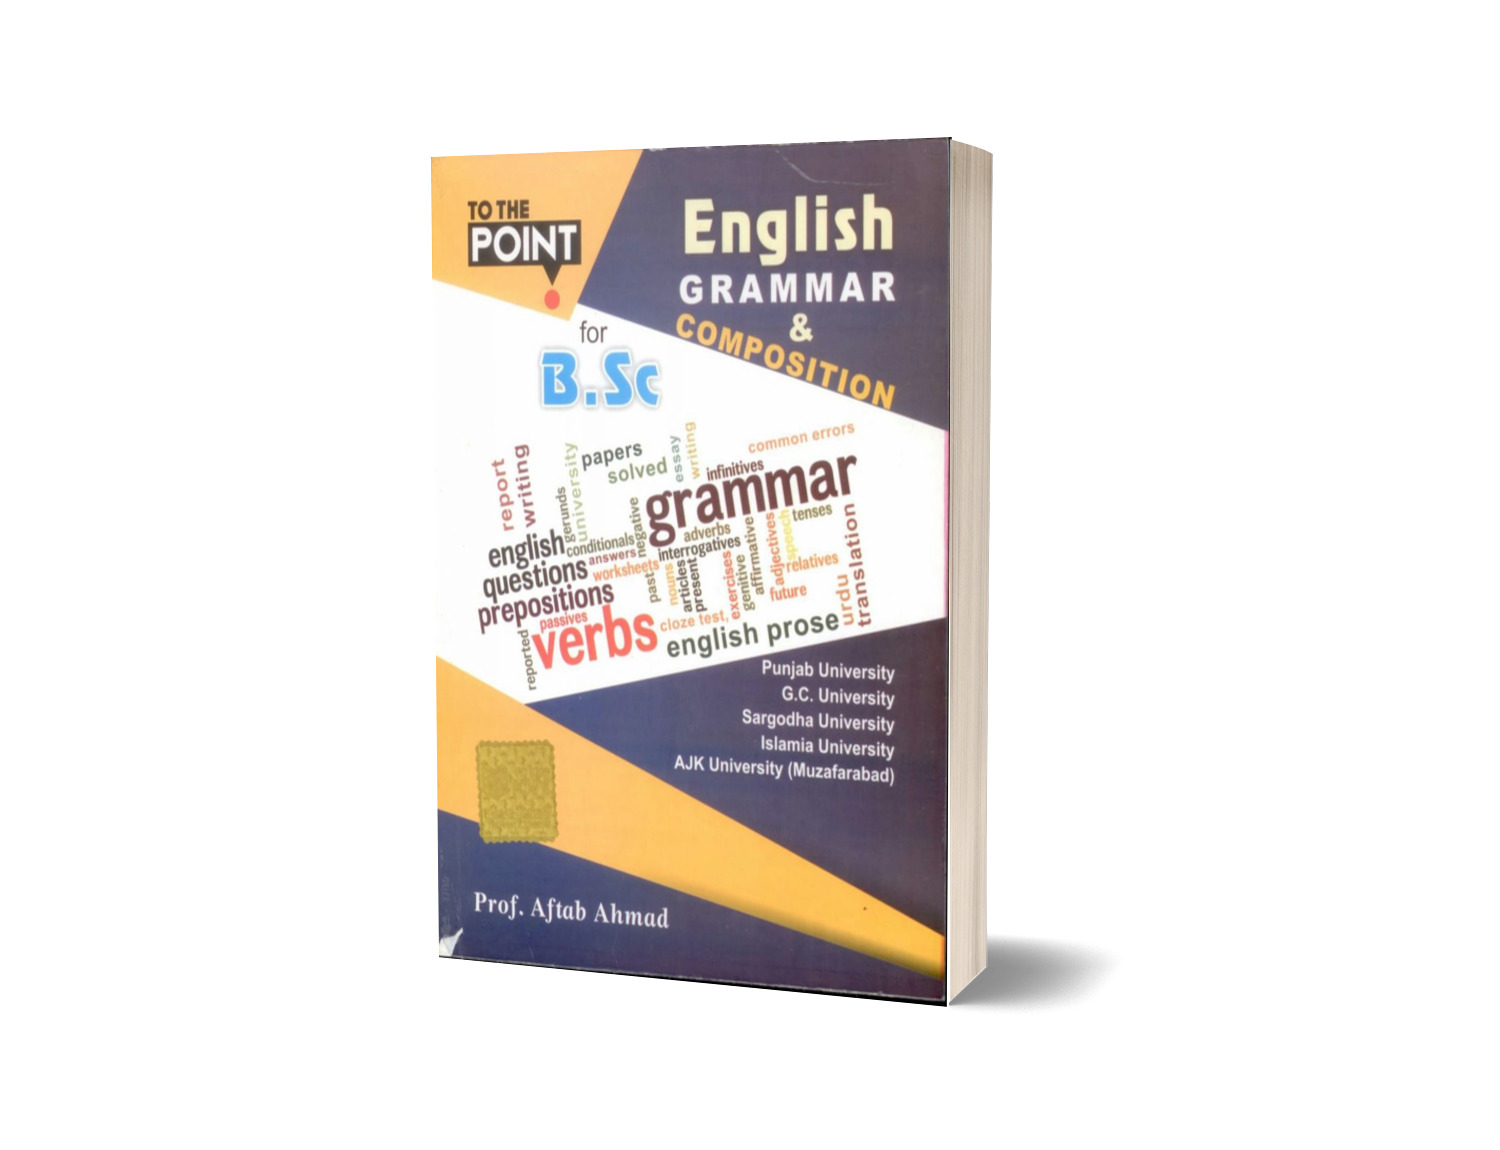 To The Point English Grammar Composition For Bsc Students By Prof Aftab Ahmad